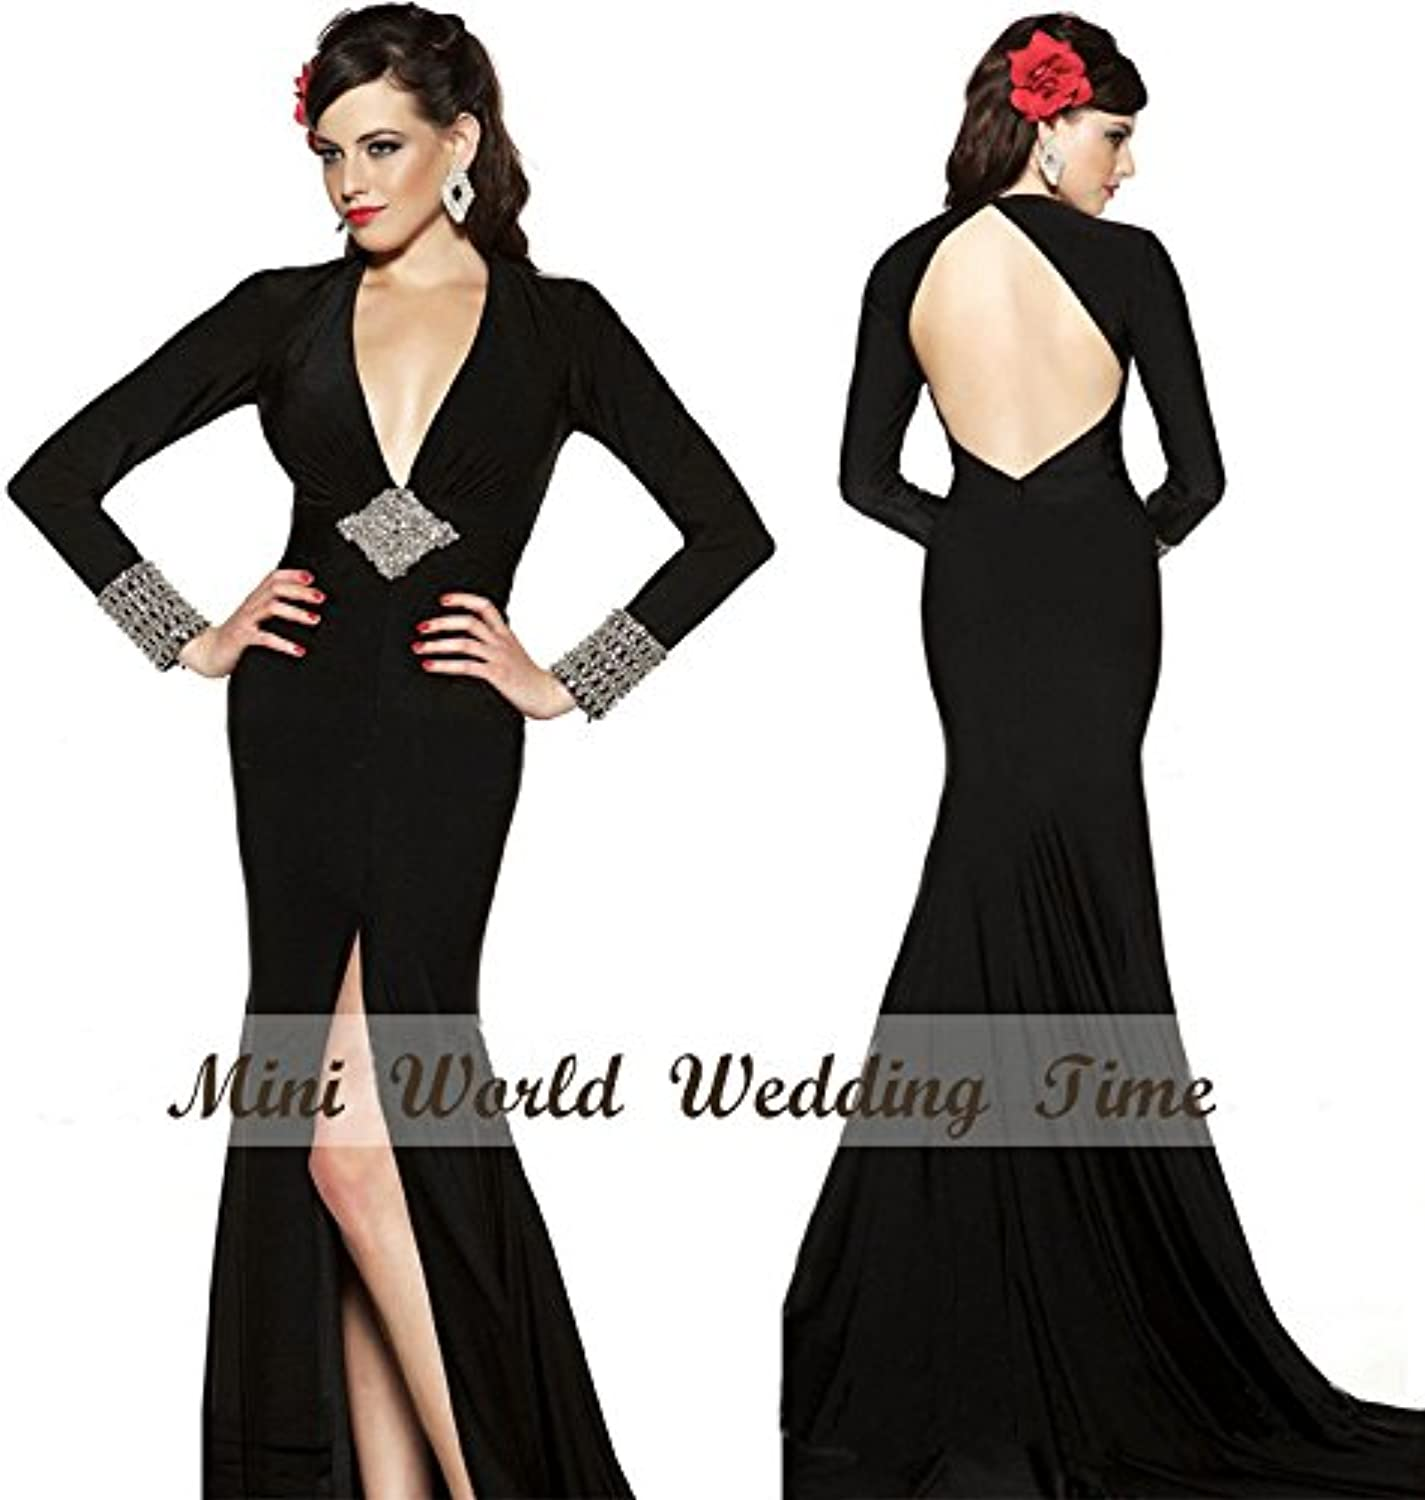 Backless Black Evening Dresses Simple and Glamgoldus Evening Dress Party Dress Or Wedding Dress